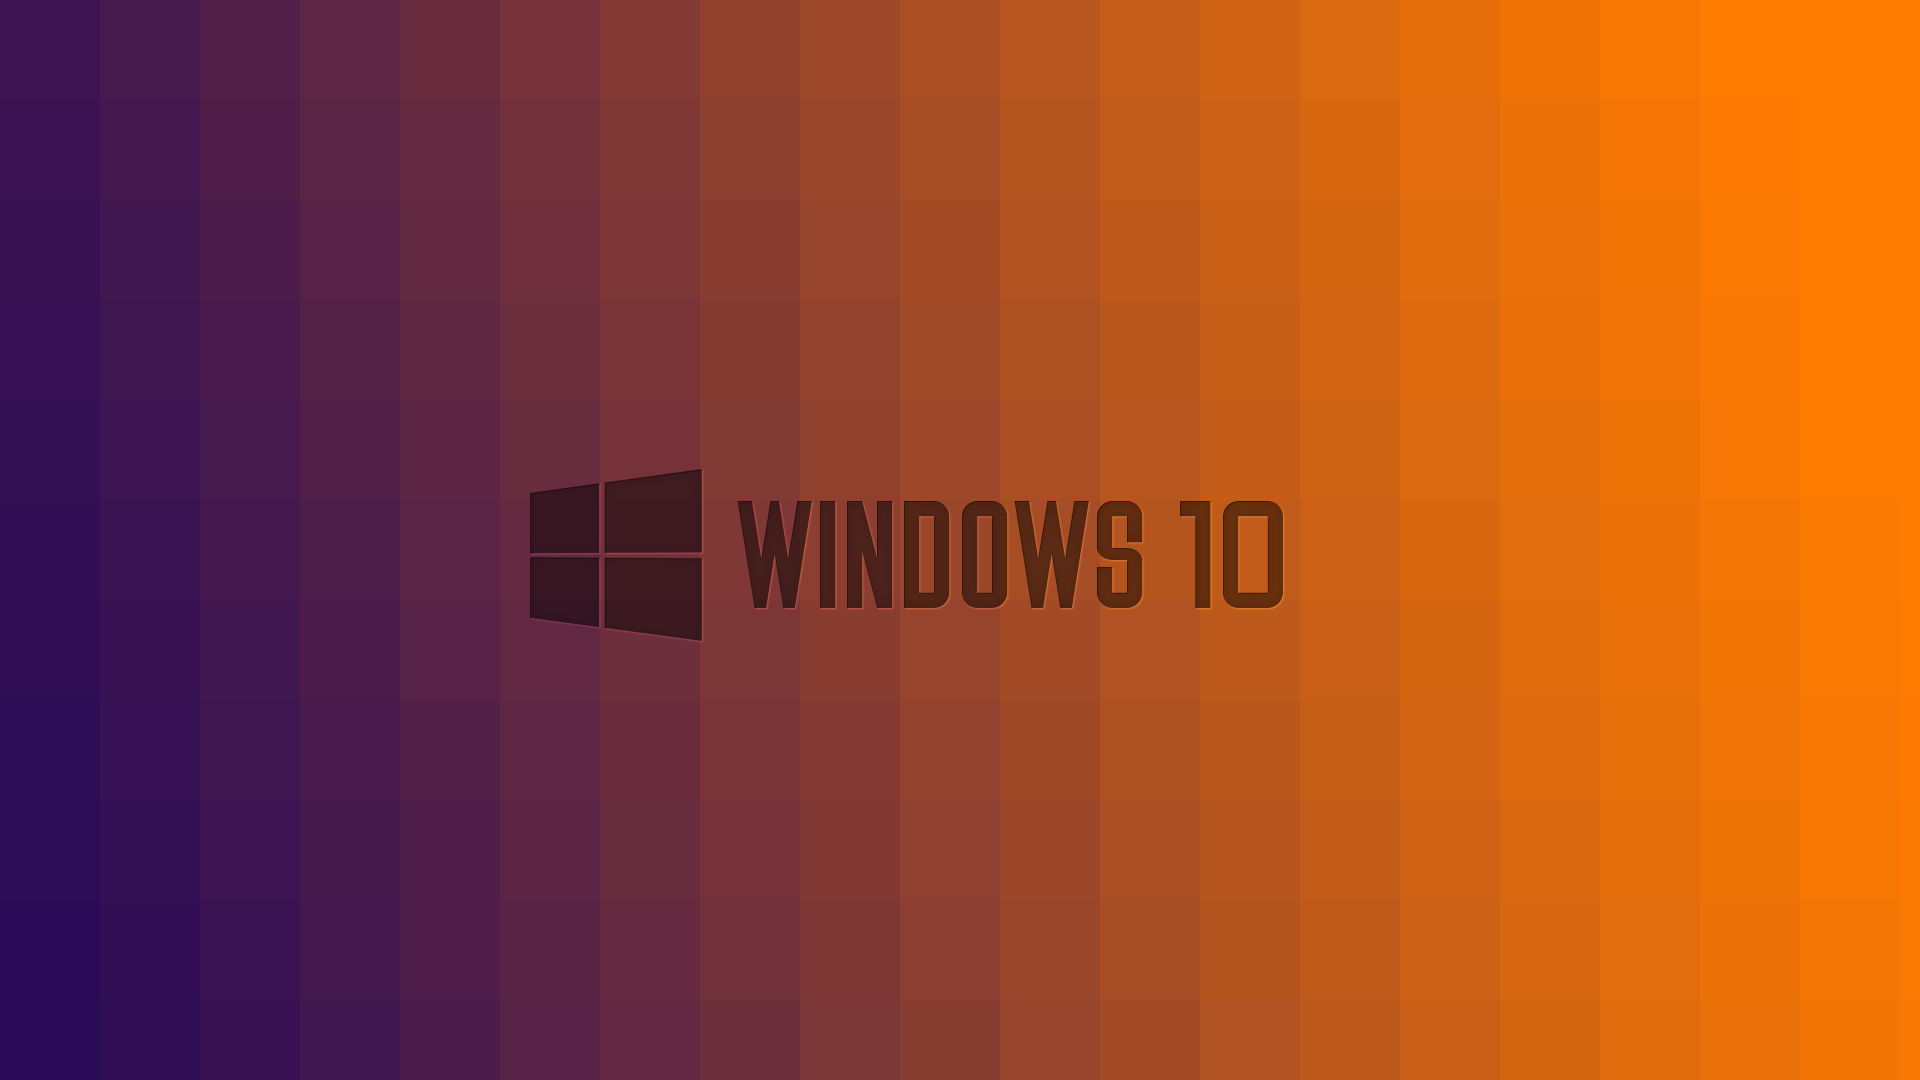 Windows 10 Logo Wallpaper and Theme Pack All for Windows 10 1920x1080